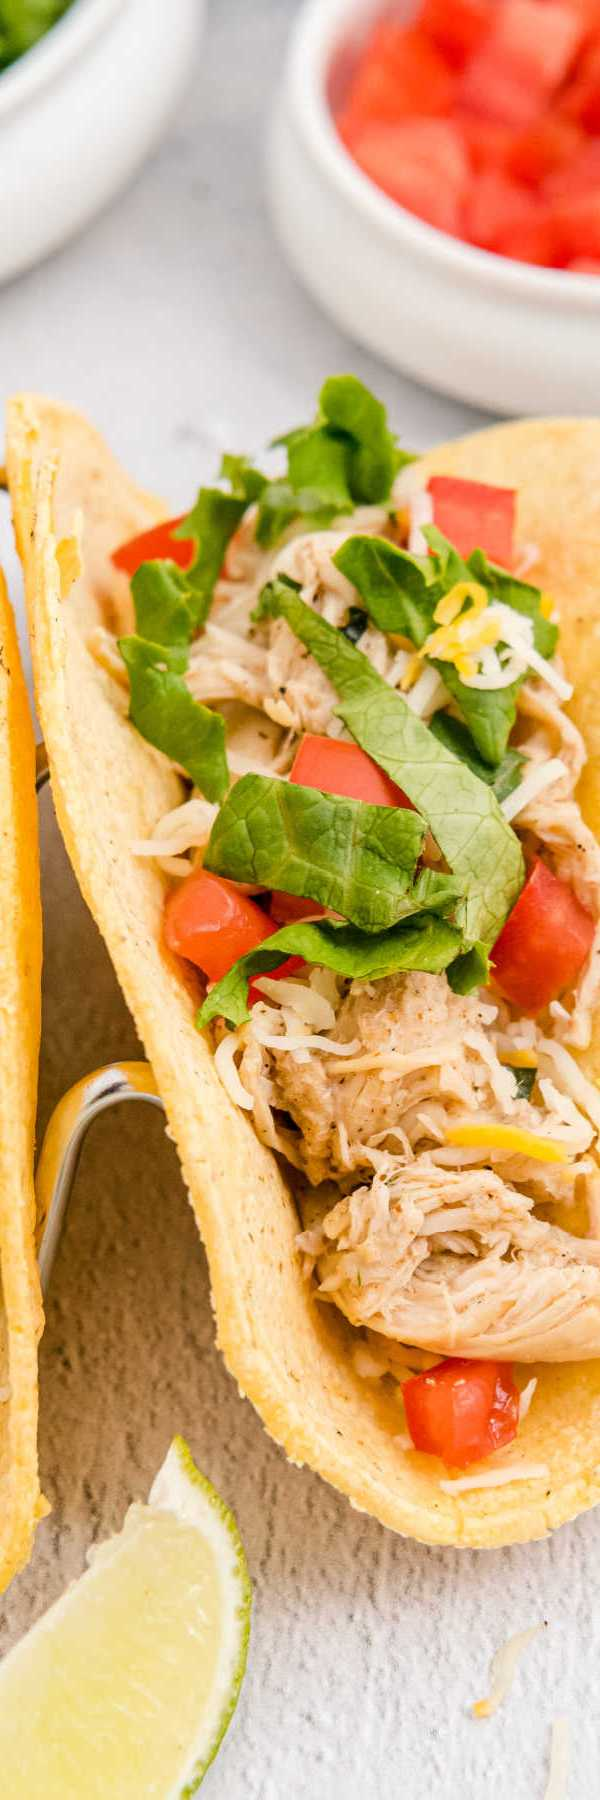 Picture collage of crockpot shredded chicken tacos for Pinterest.